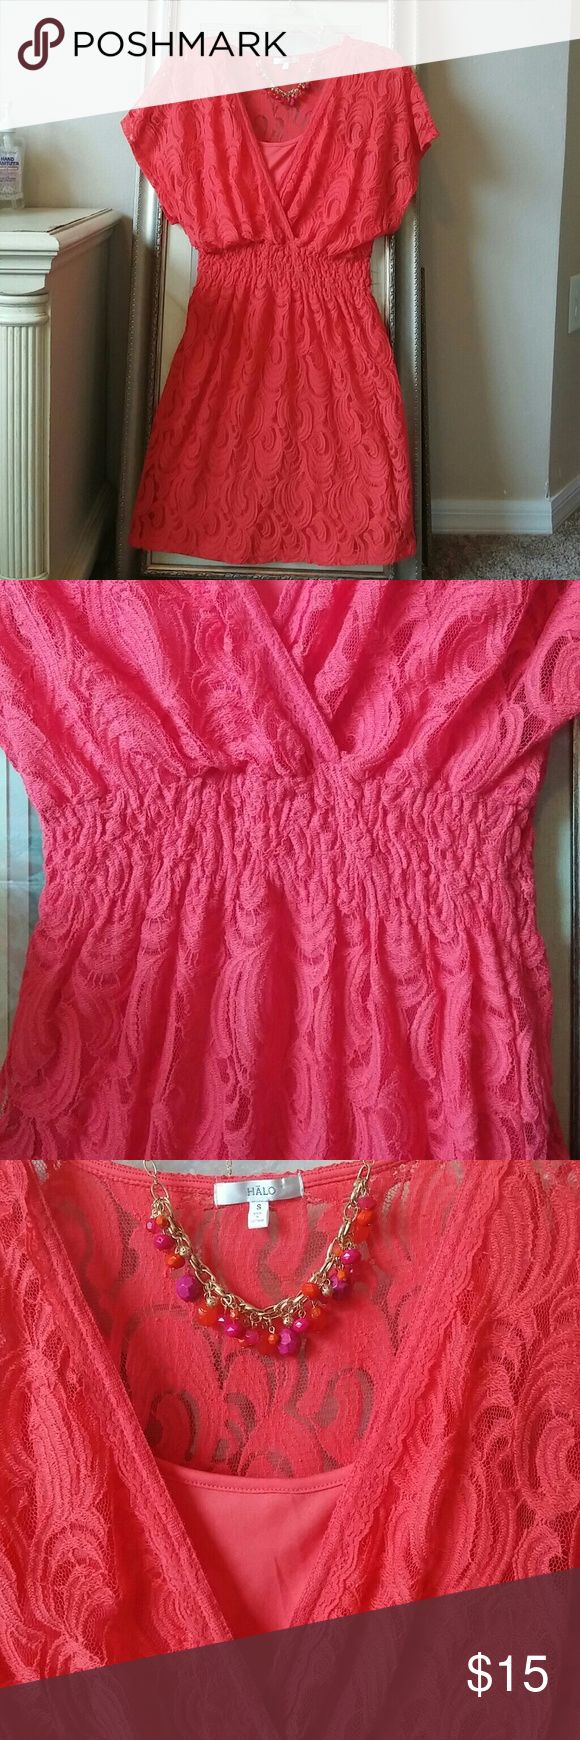 HALO Dress Coral color lace puckered waist dress with undergarment. It was never worn. Dresses Mini